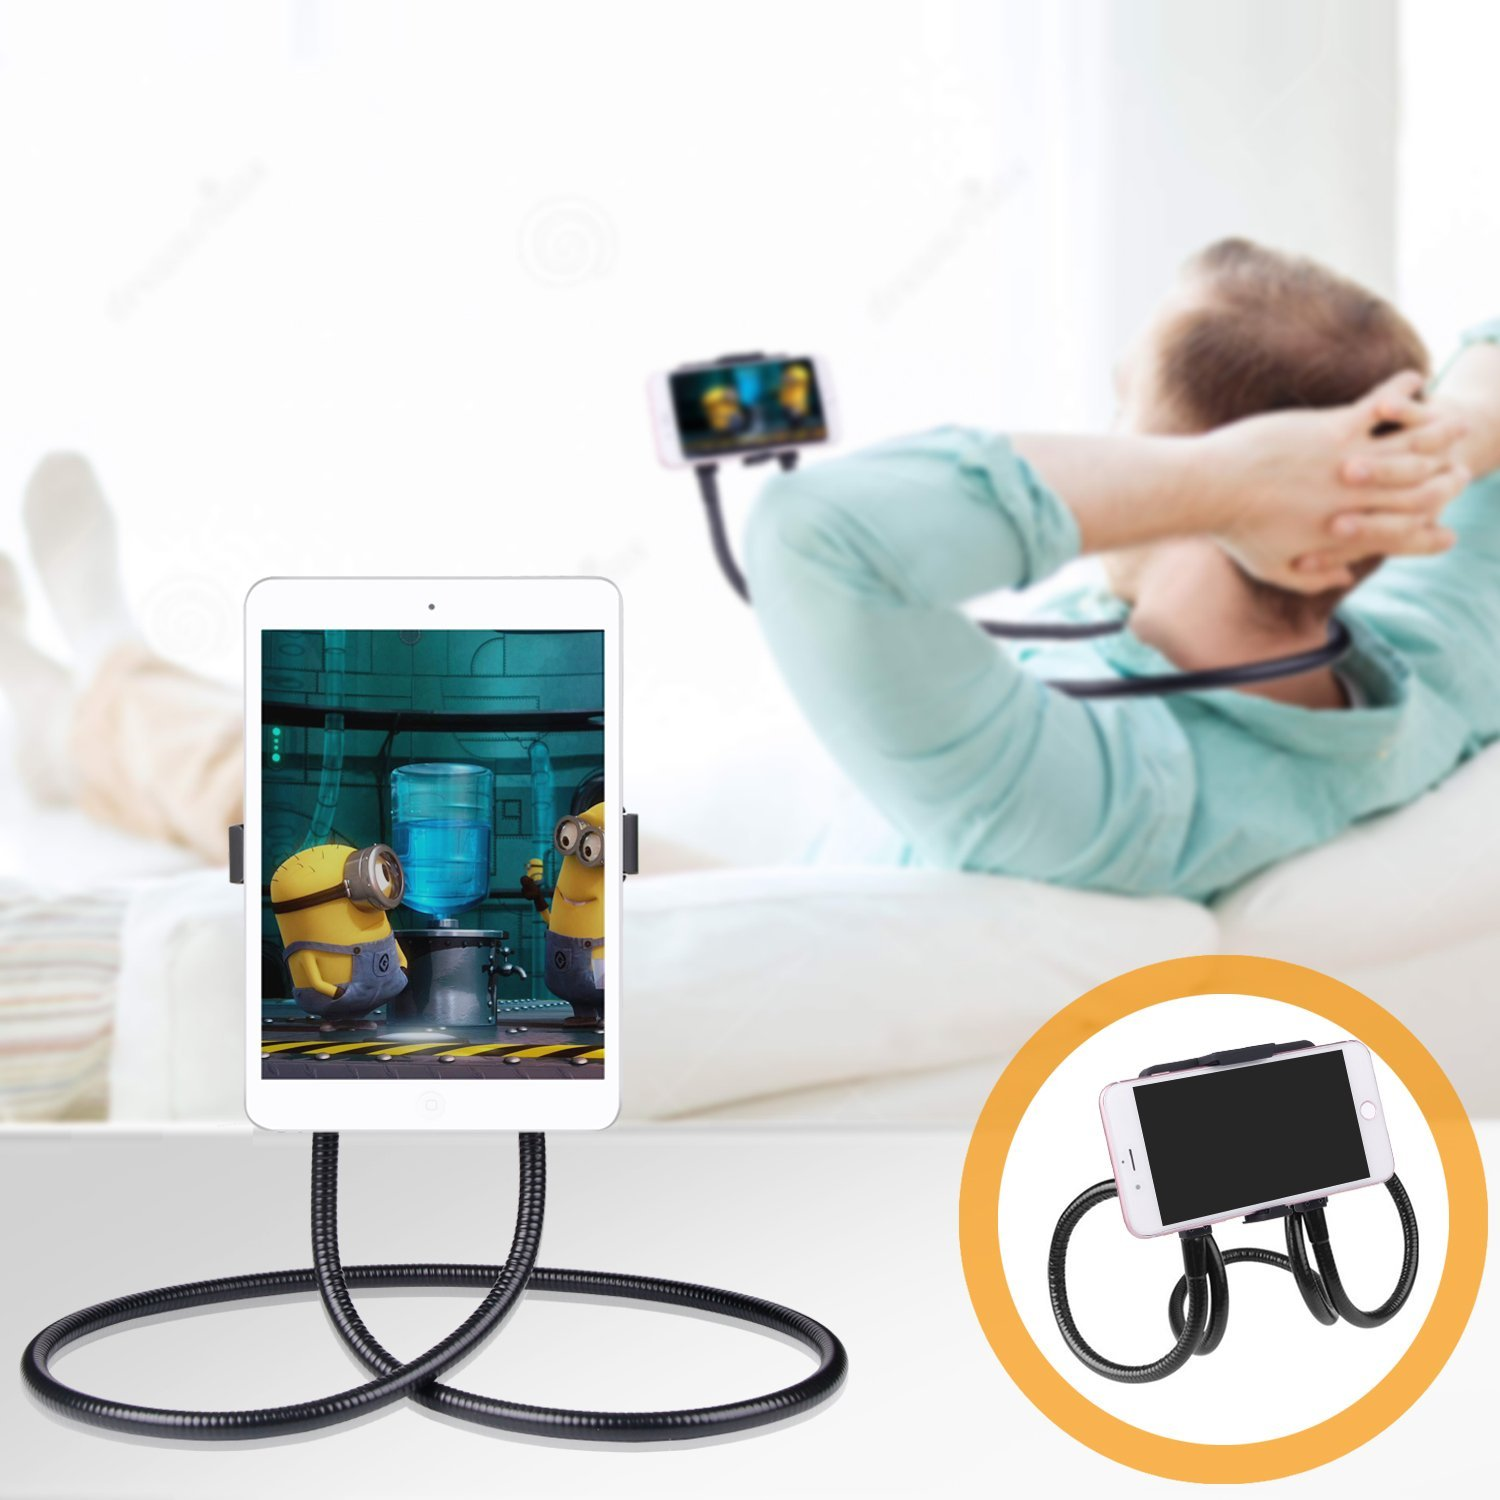 HF-LY-HA: Cell Phone Holder, Tablet Holder iPad Stand Universal Phone Stand, Lazy Bracket, DIY Free Rotating Gooseneck Mounts with Multiple Function